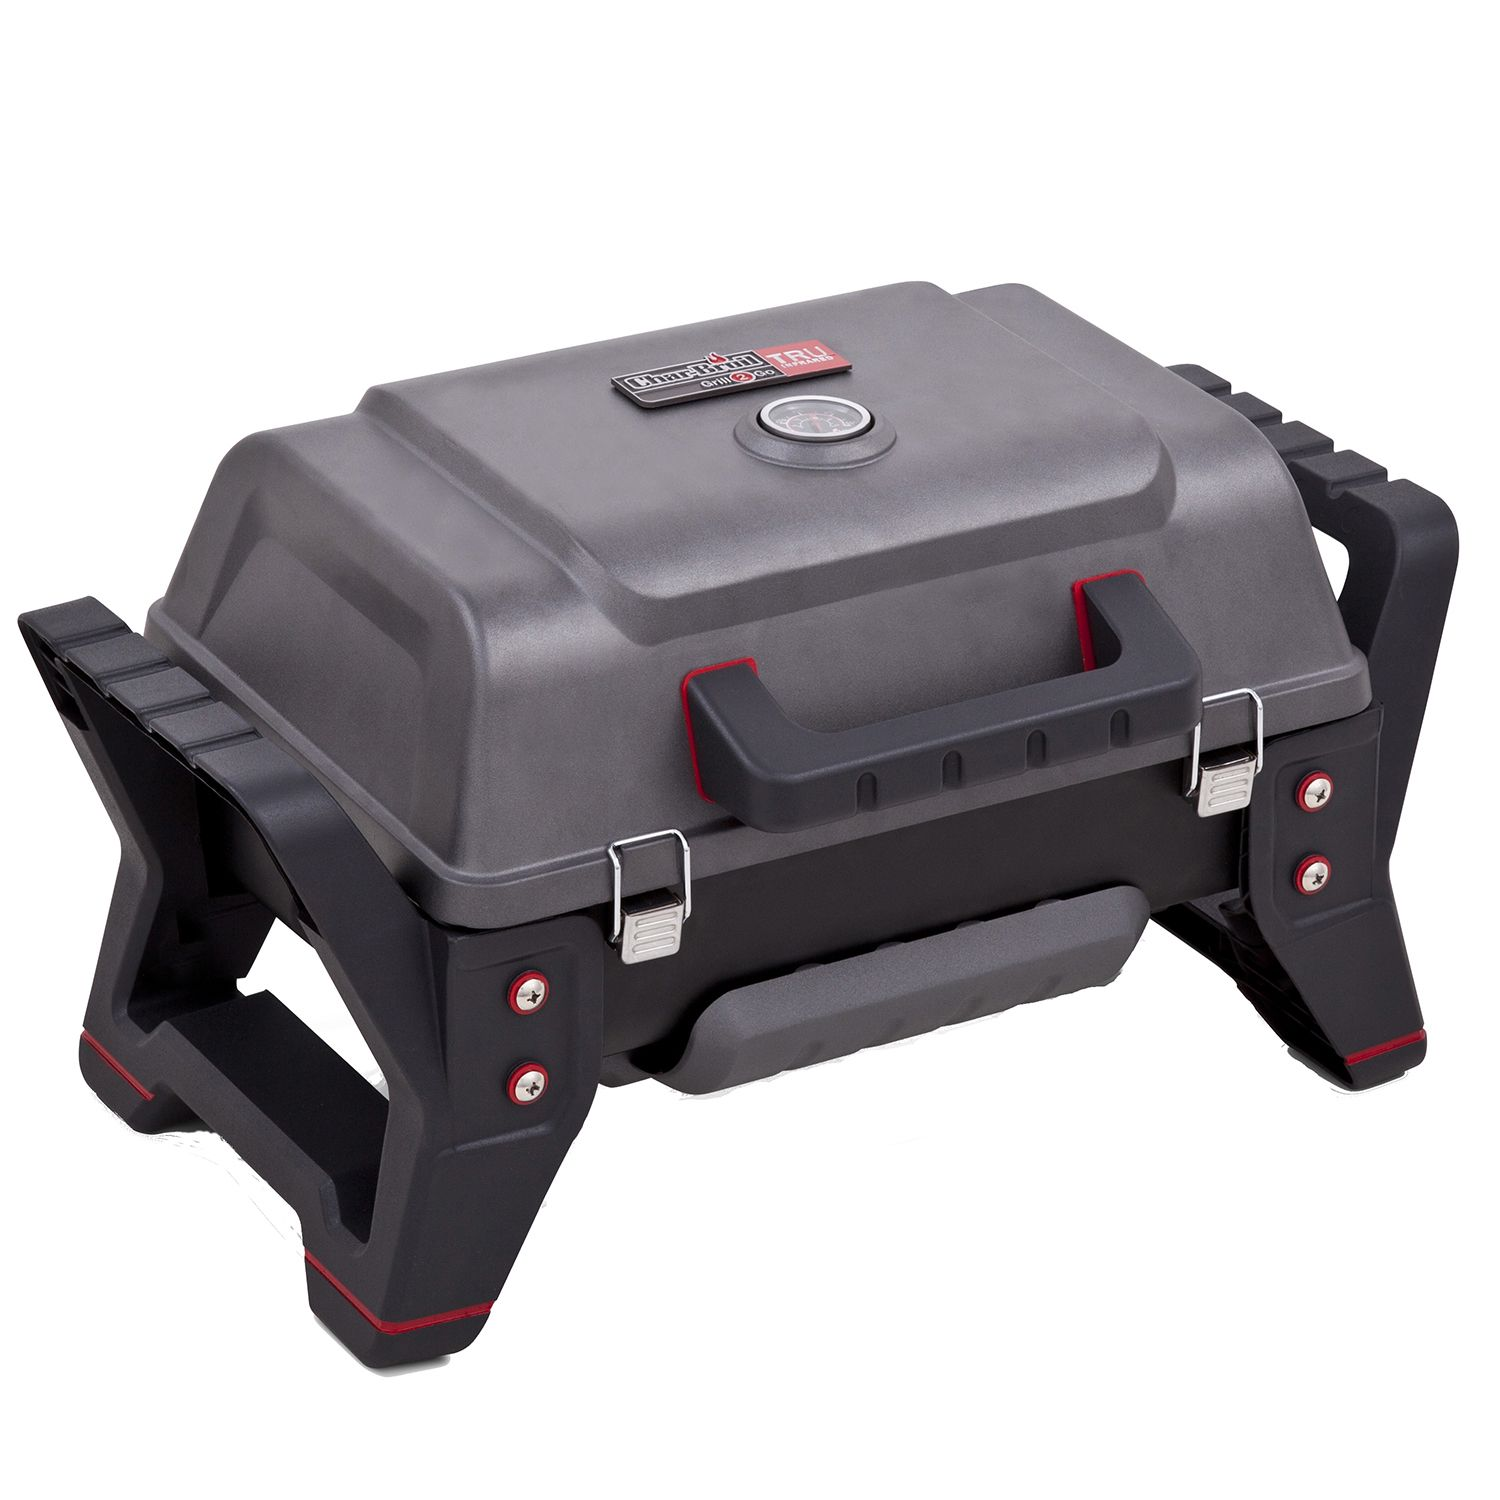 Char Broil TRU Infrared Grill2Go Portable Outdoor Tabletop Gas Grill